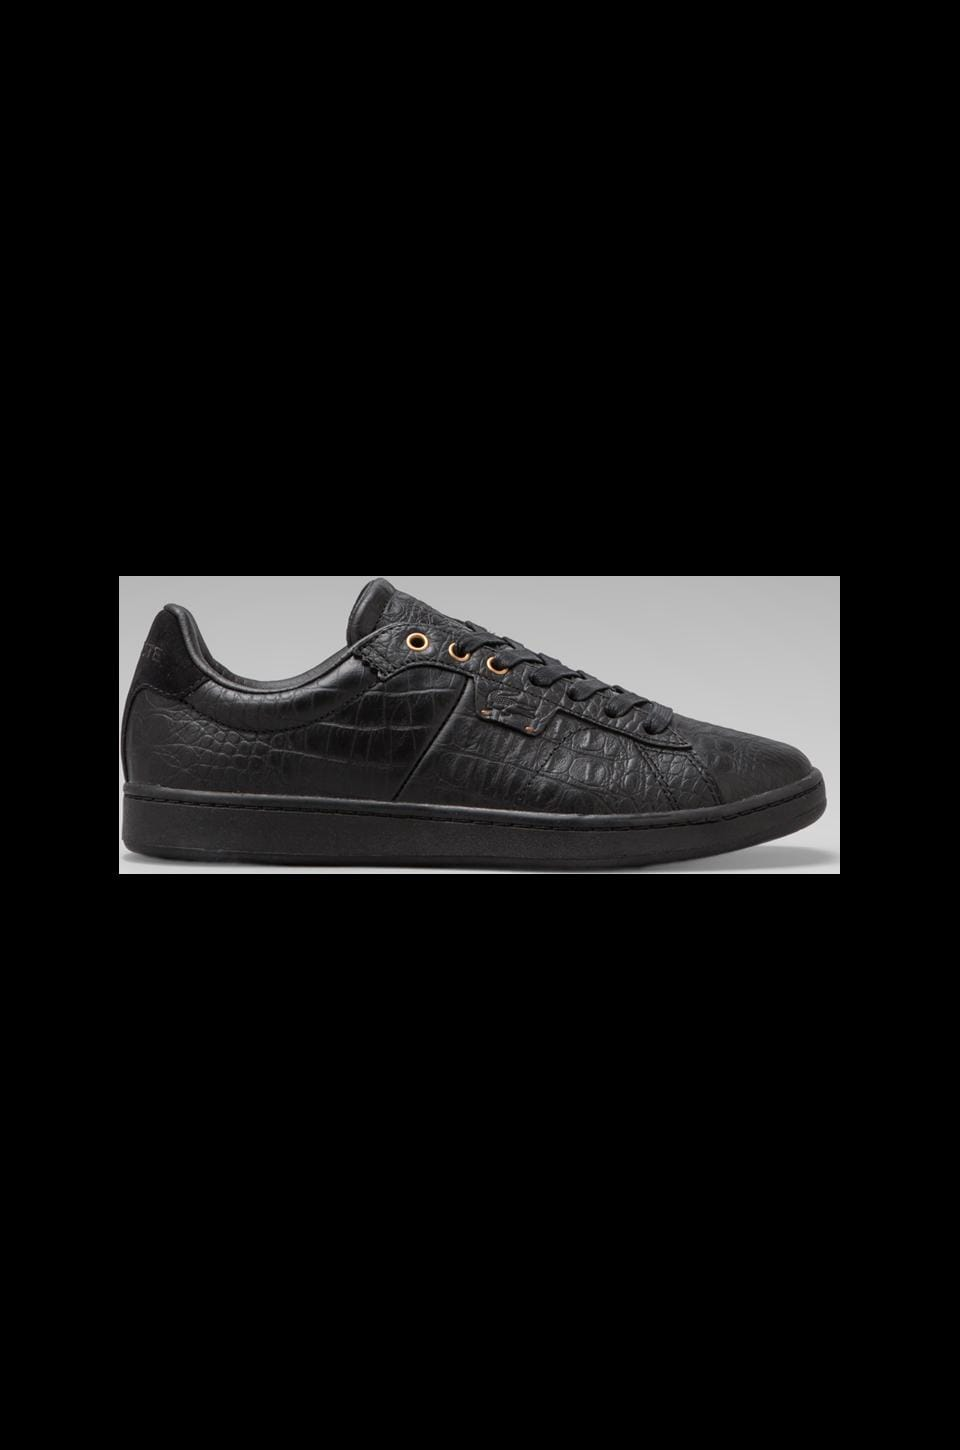 Lacoste Live Broadwick AT in Black/Black